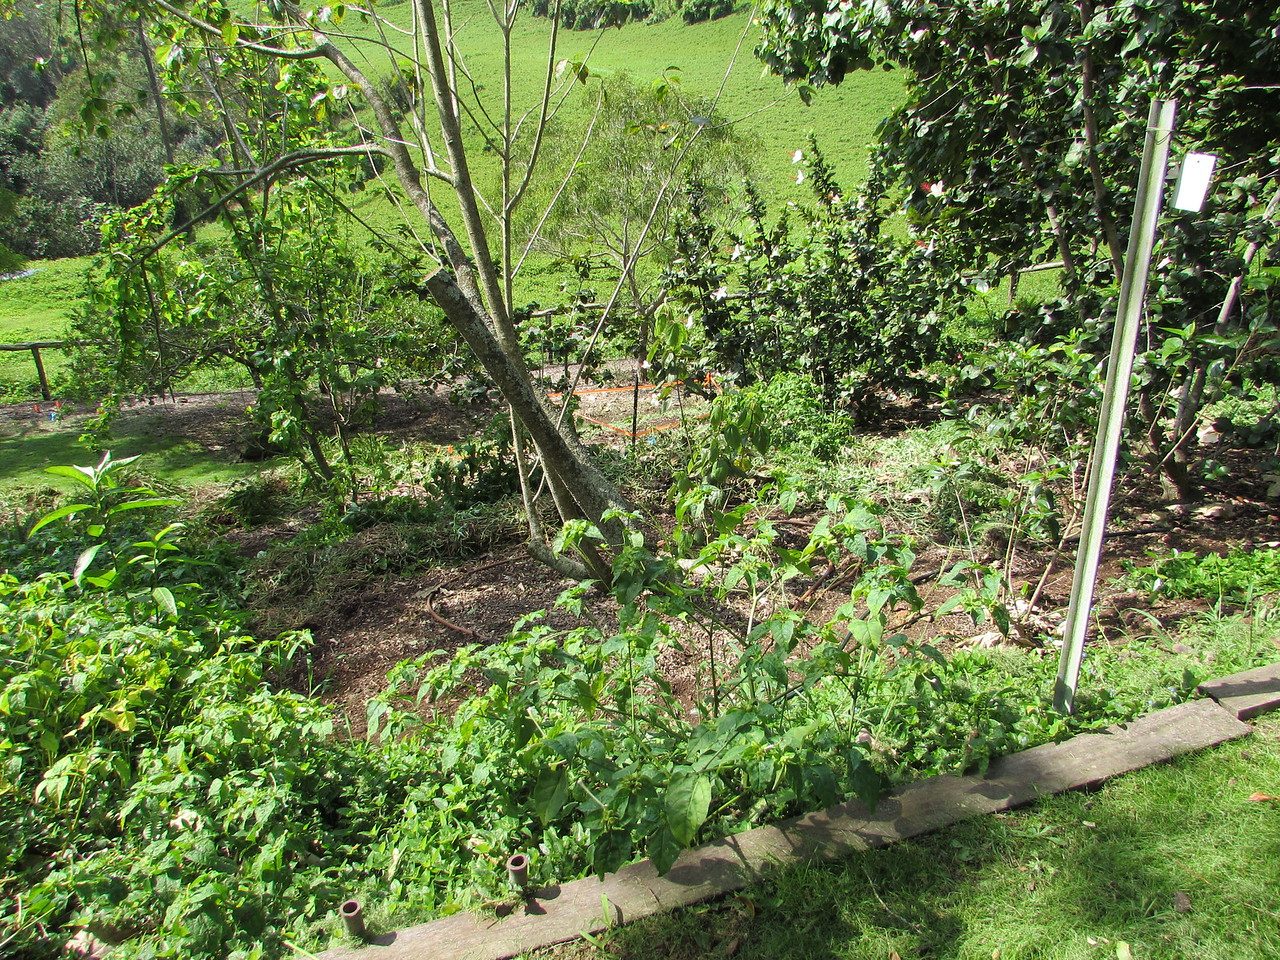 View of the block weeded by members  all the weeds inside a circle the size of the tree's dripline are removed, and placed  along the circle's downhill side, to slow down erosion. The clear area is fertilized with pelleted chicken manure to compensate for the nitrogen that will be removed by the subsequent layer of mulch. Weeds outside the dripline remain, to slow erosion, until they're replaced by native understory plants.